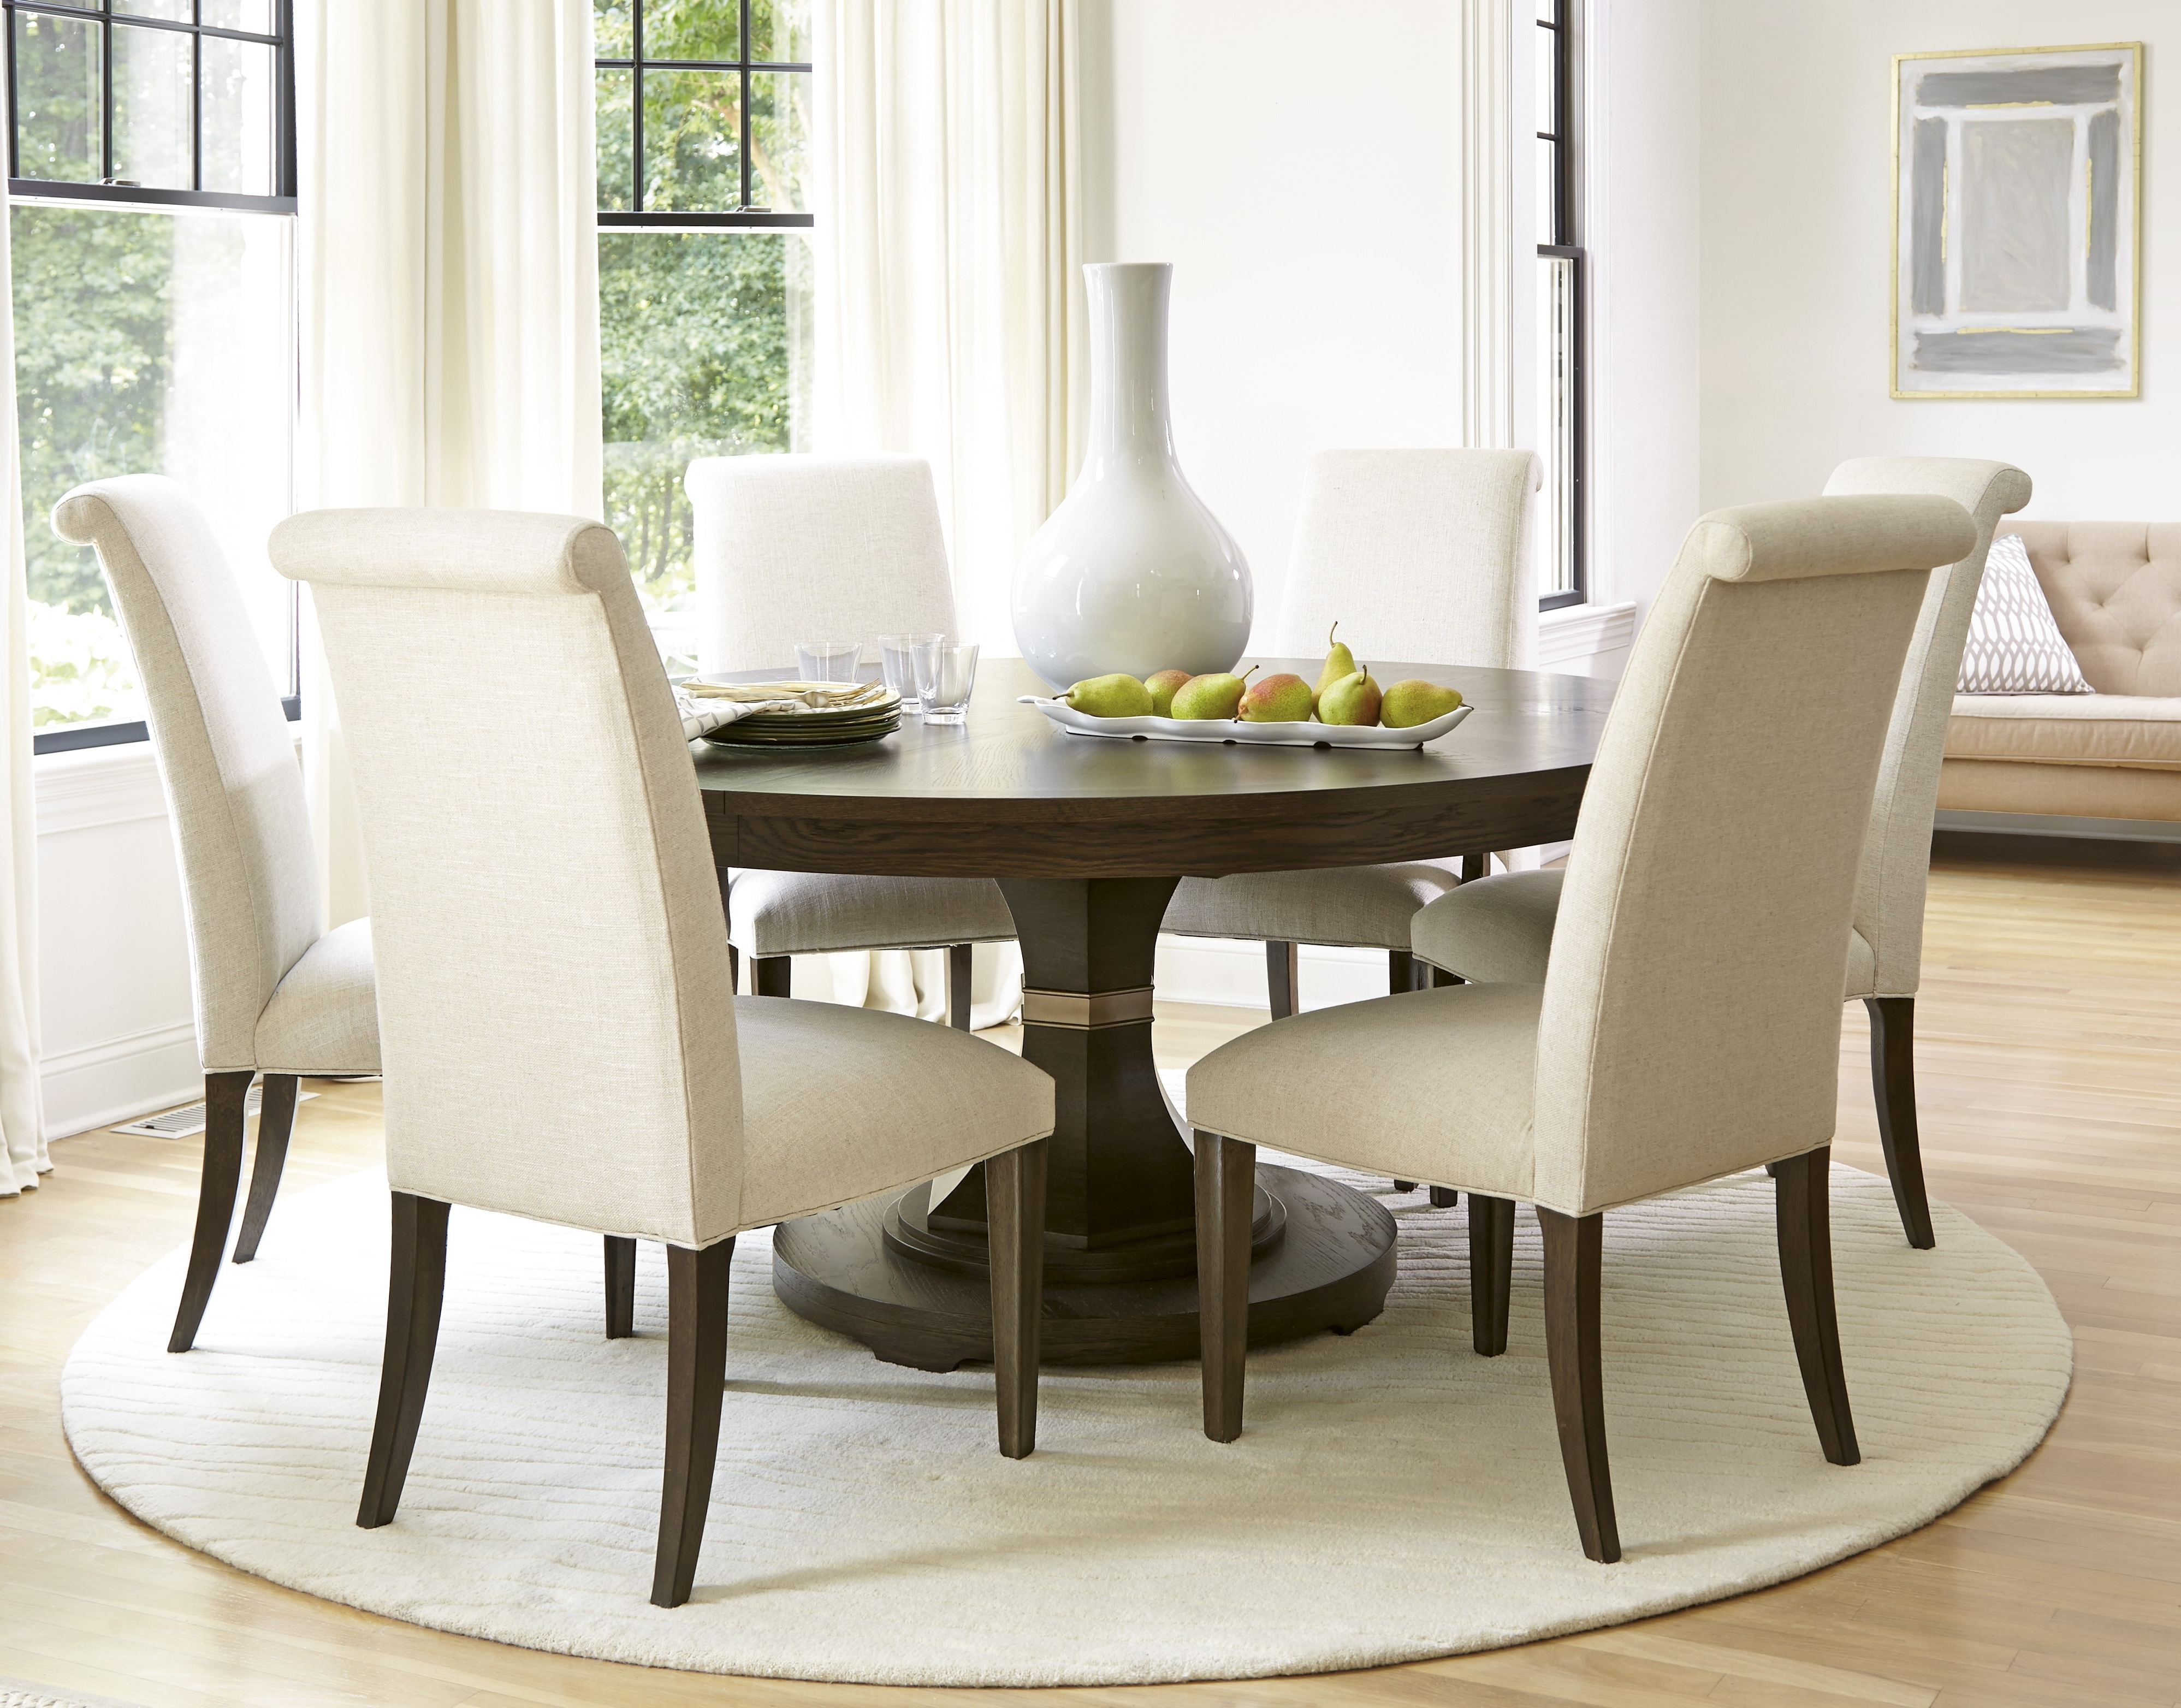 Popular Classy Circular Dining Room Tables 27 – Esescatrina In Circular Dining Tables For (View 15 of 25)